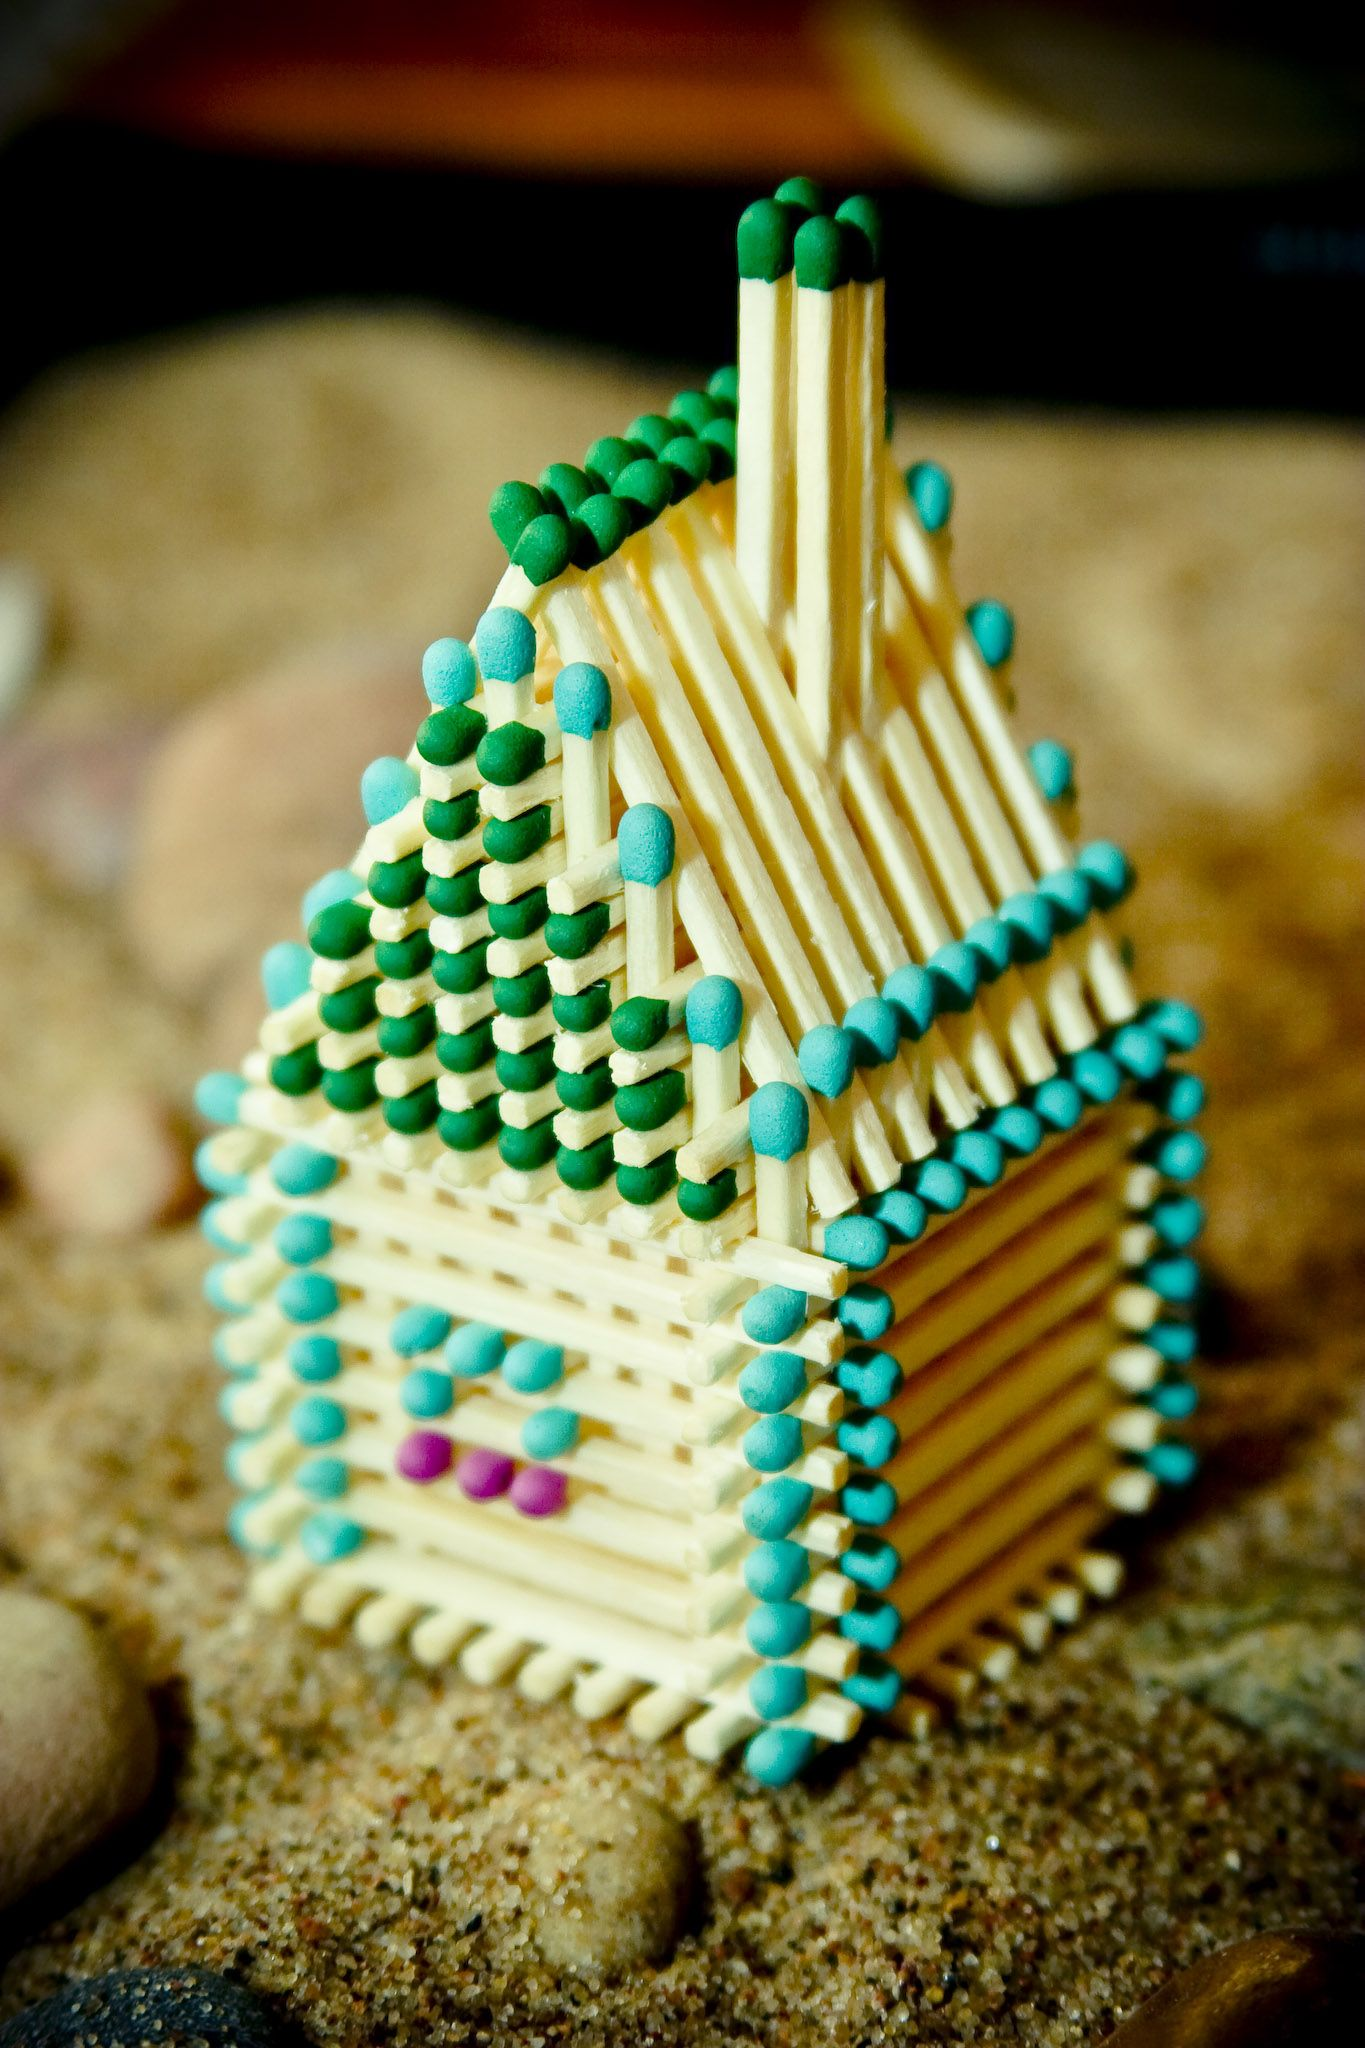 Handmade Match Stick House Find Out More At Www Matchhouse Lv